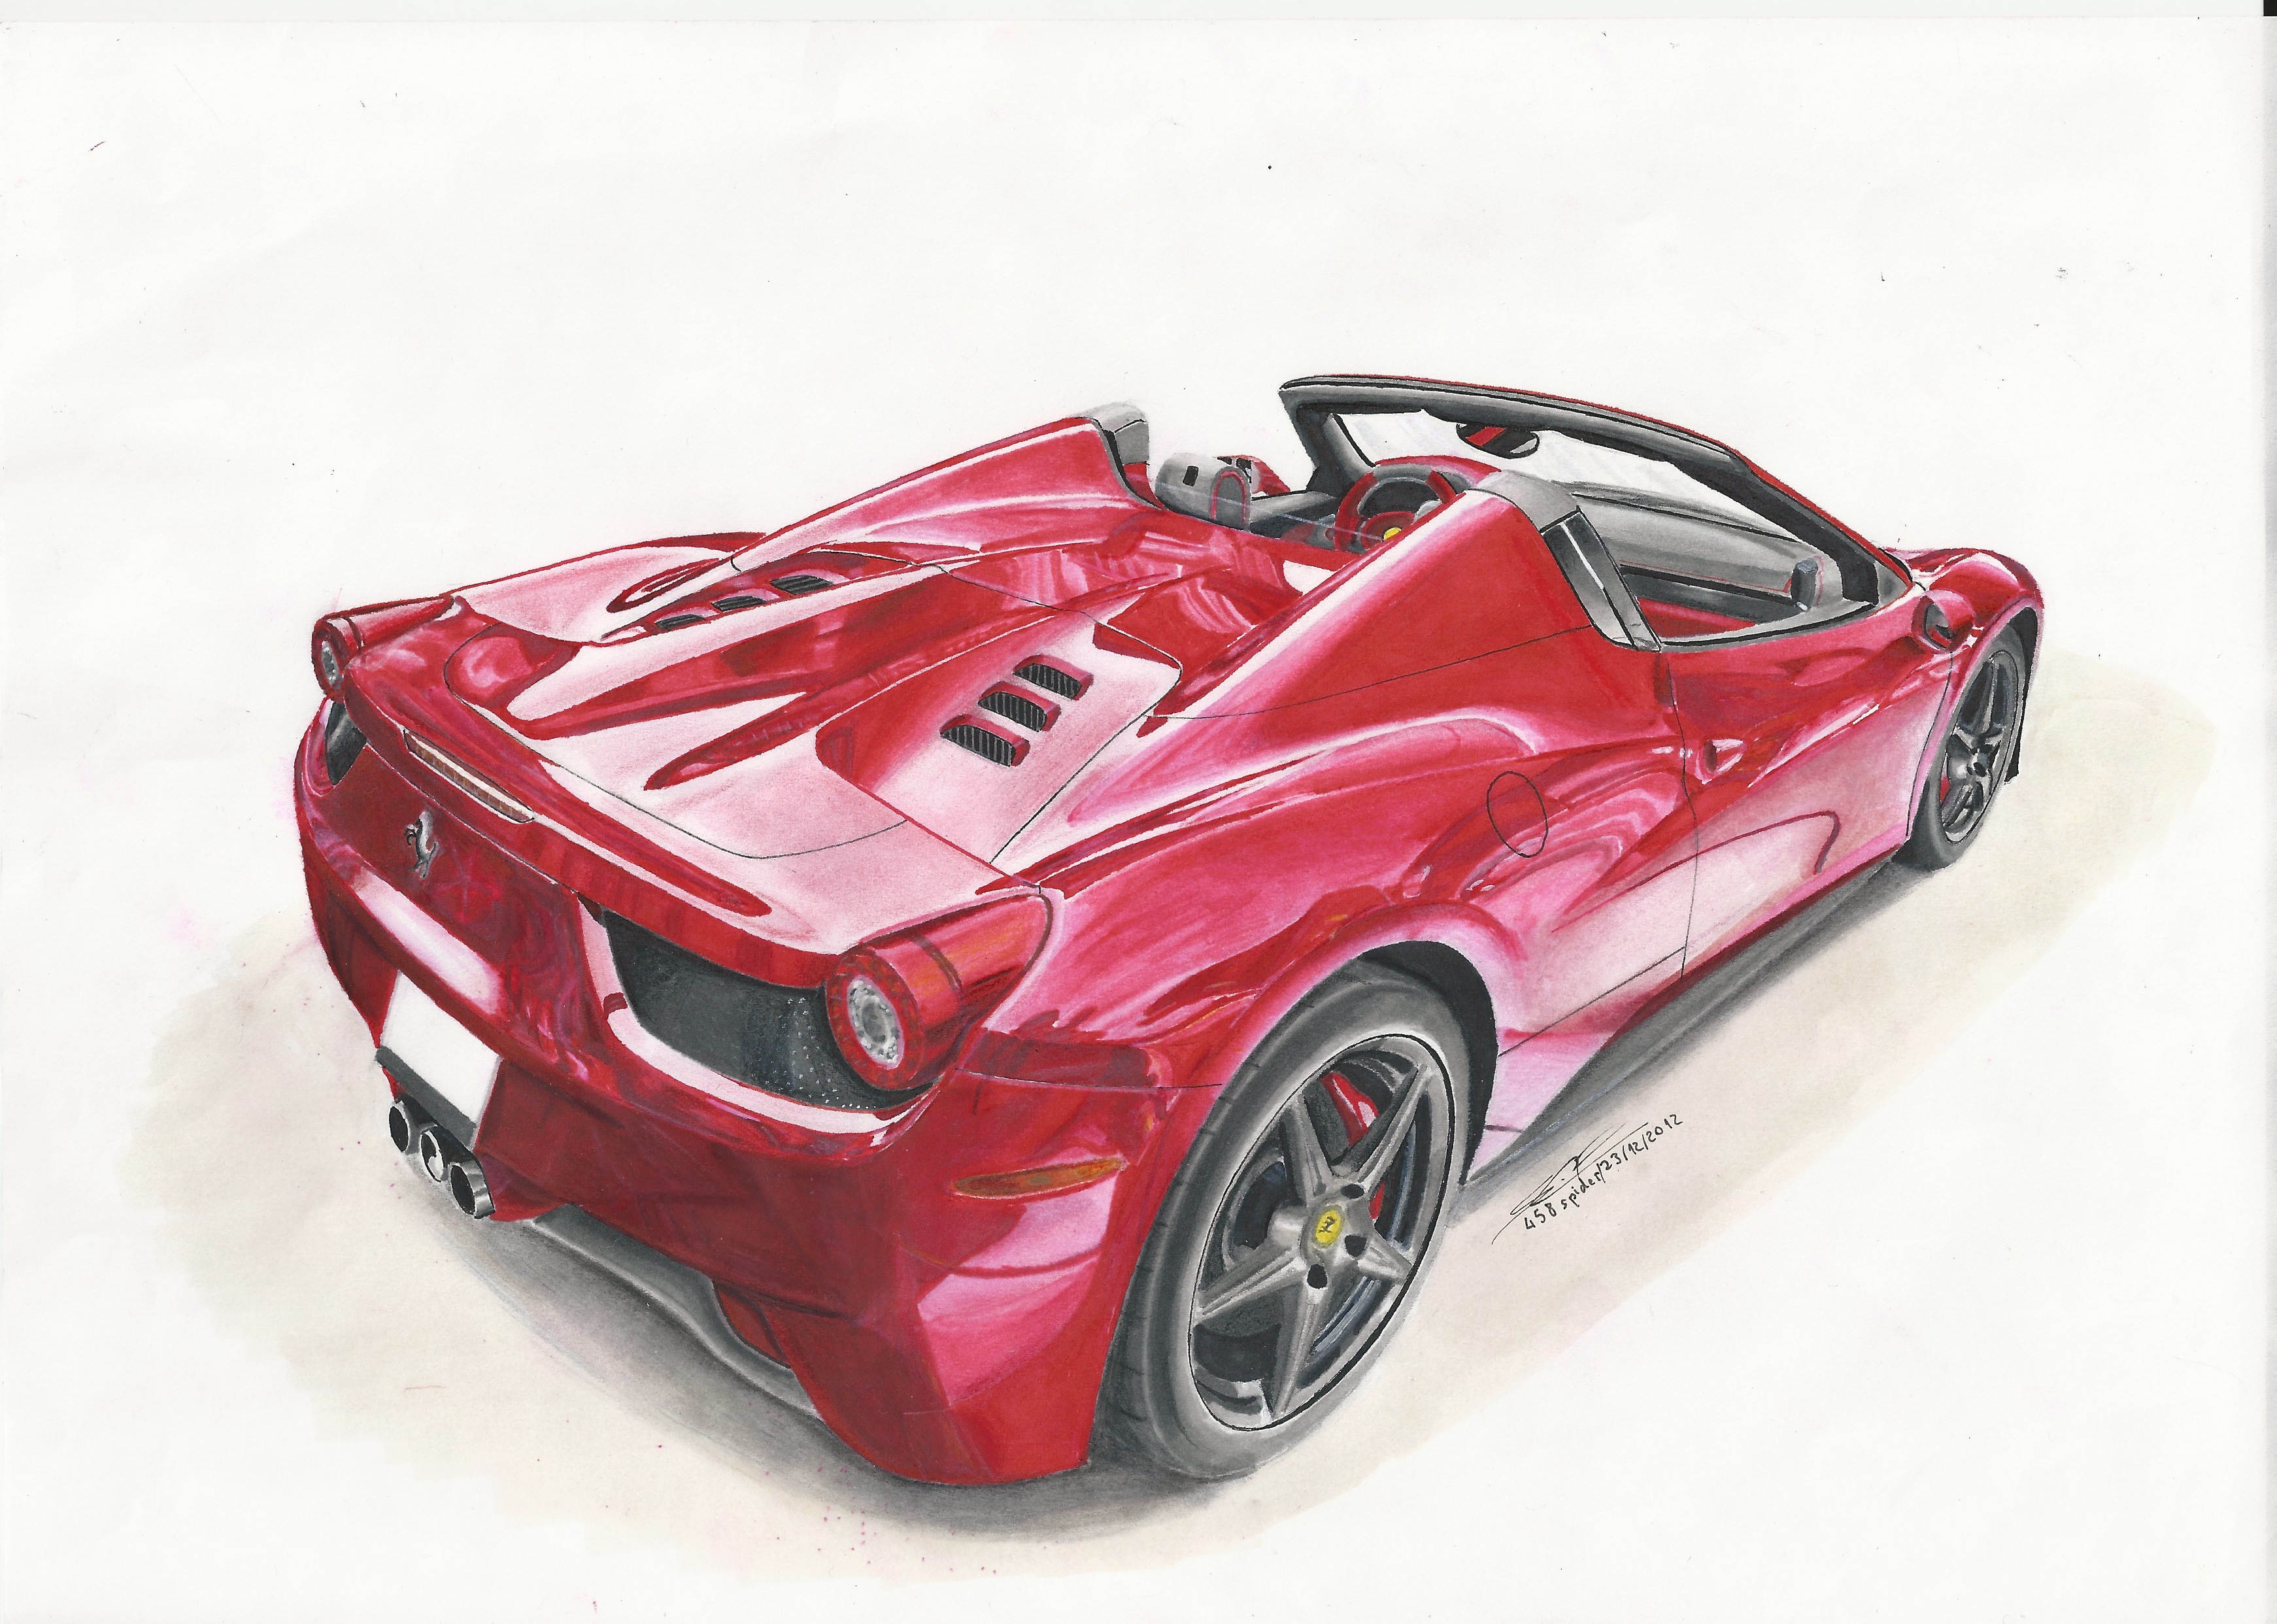 Ferrari 458 spider dessins freecandy photos club - Dessin de ferrari ...